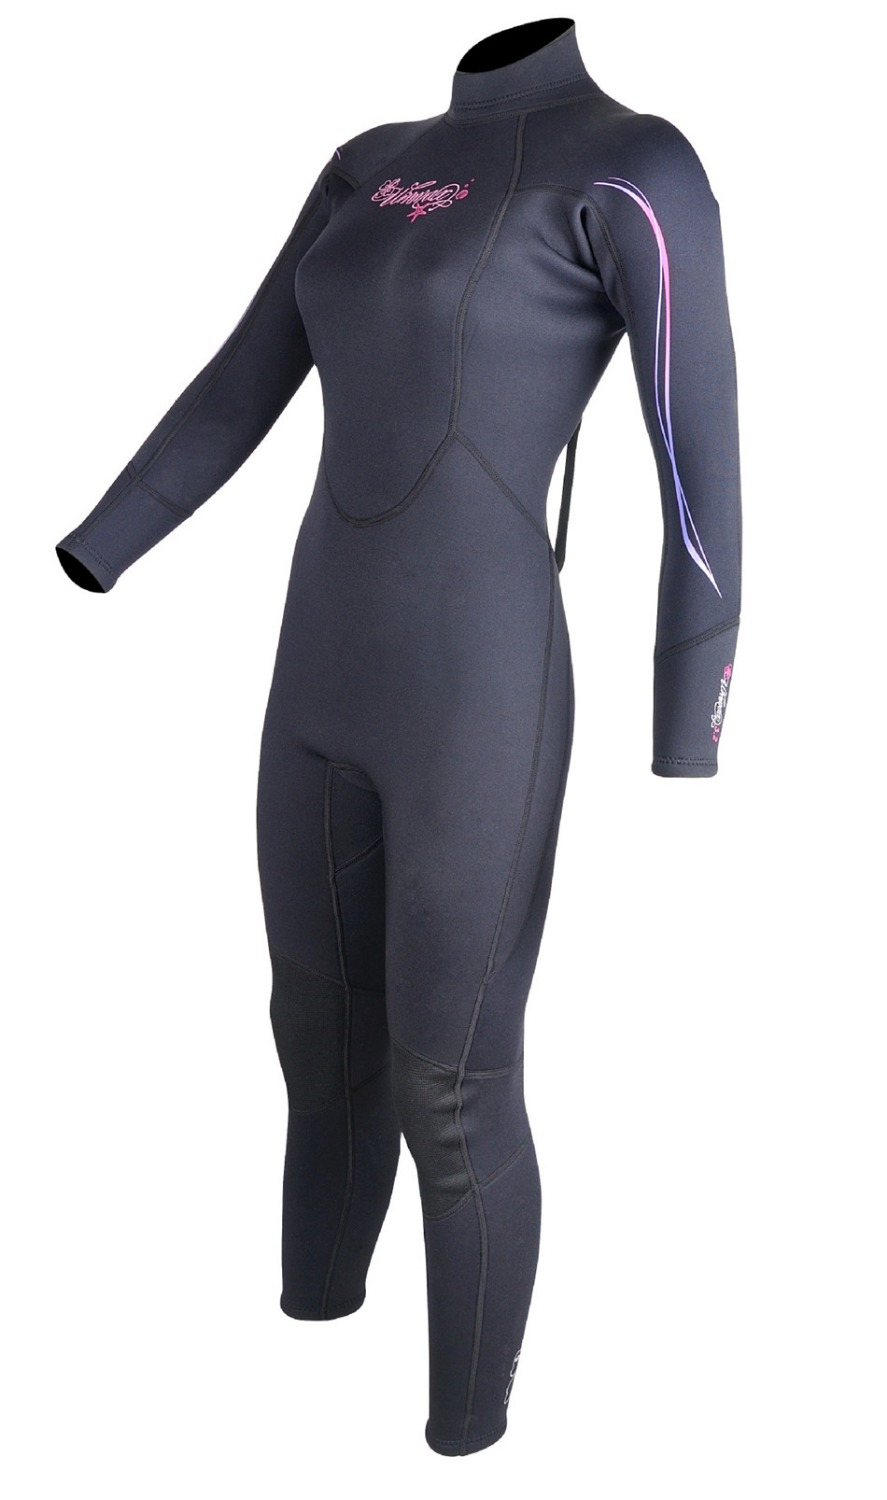 women long sleeve 3mm Neoprene  diving surfing suit 2017 windsurfing rubber coat wetsuit swimsuit jumpsuit  surf lycra rash guarwomen long sleeve 3mm Neoprene  diving surfing suit 2017 windsurfing rubber coat wetsuit swimsuit jumpsuit  surf lycra rash guar